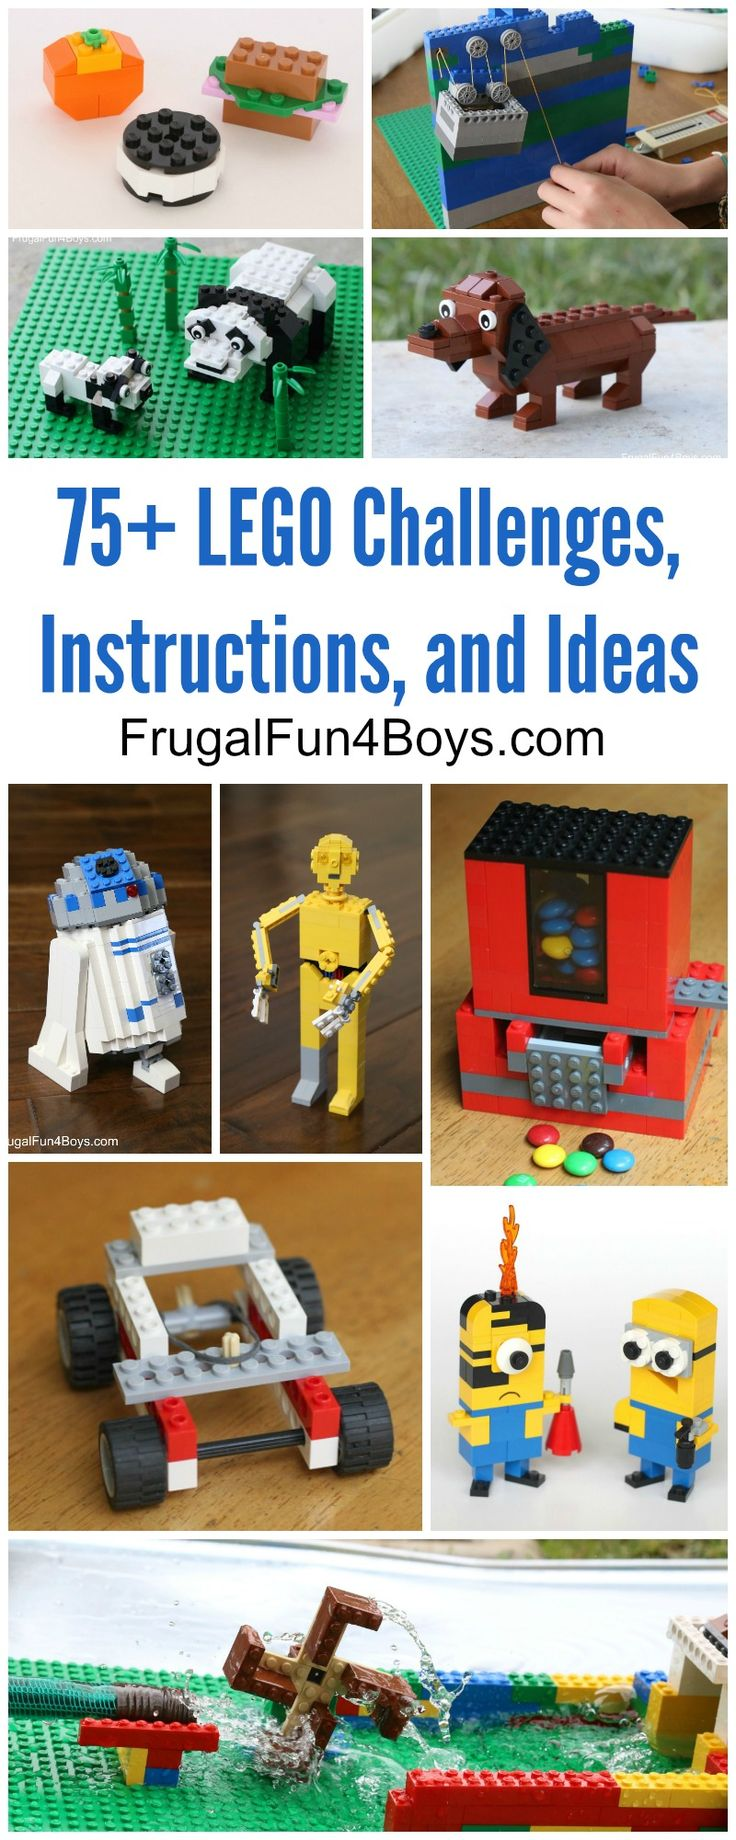 Do you have LEGO fans at your house?  Here is a collection of some of the best LEGO building ideas from this site and from around the web!  The focus of this post is fun building ideas, along with some STEM (science, technology, engineering, and math) ideas as well. LEGO Machines and STEM Learning: Build …